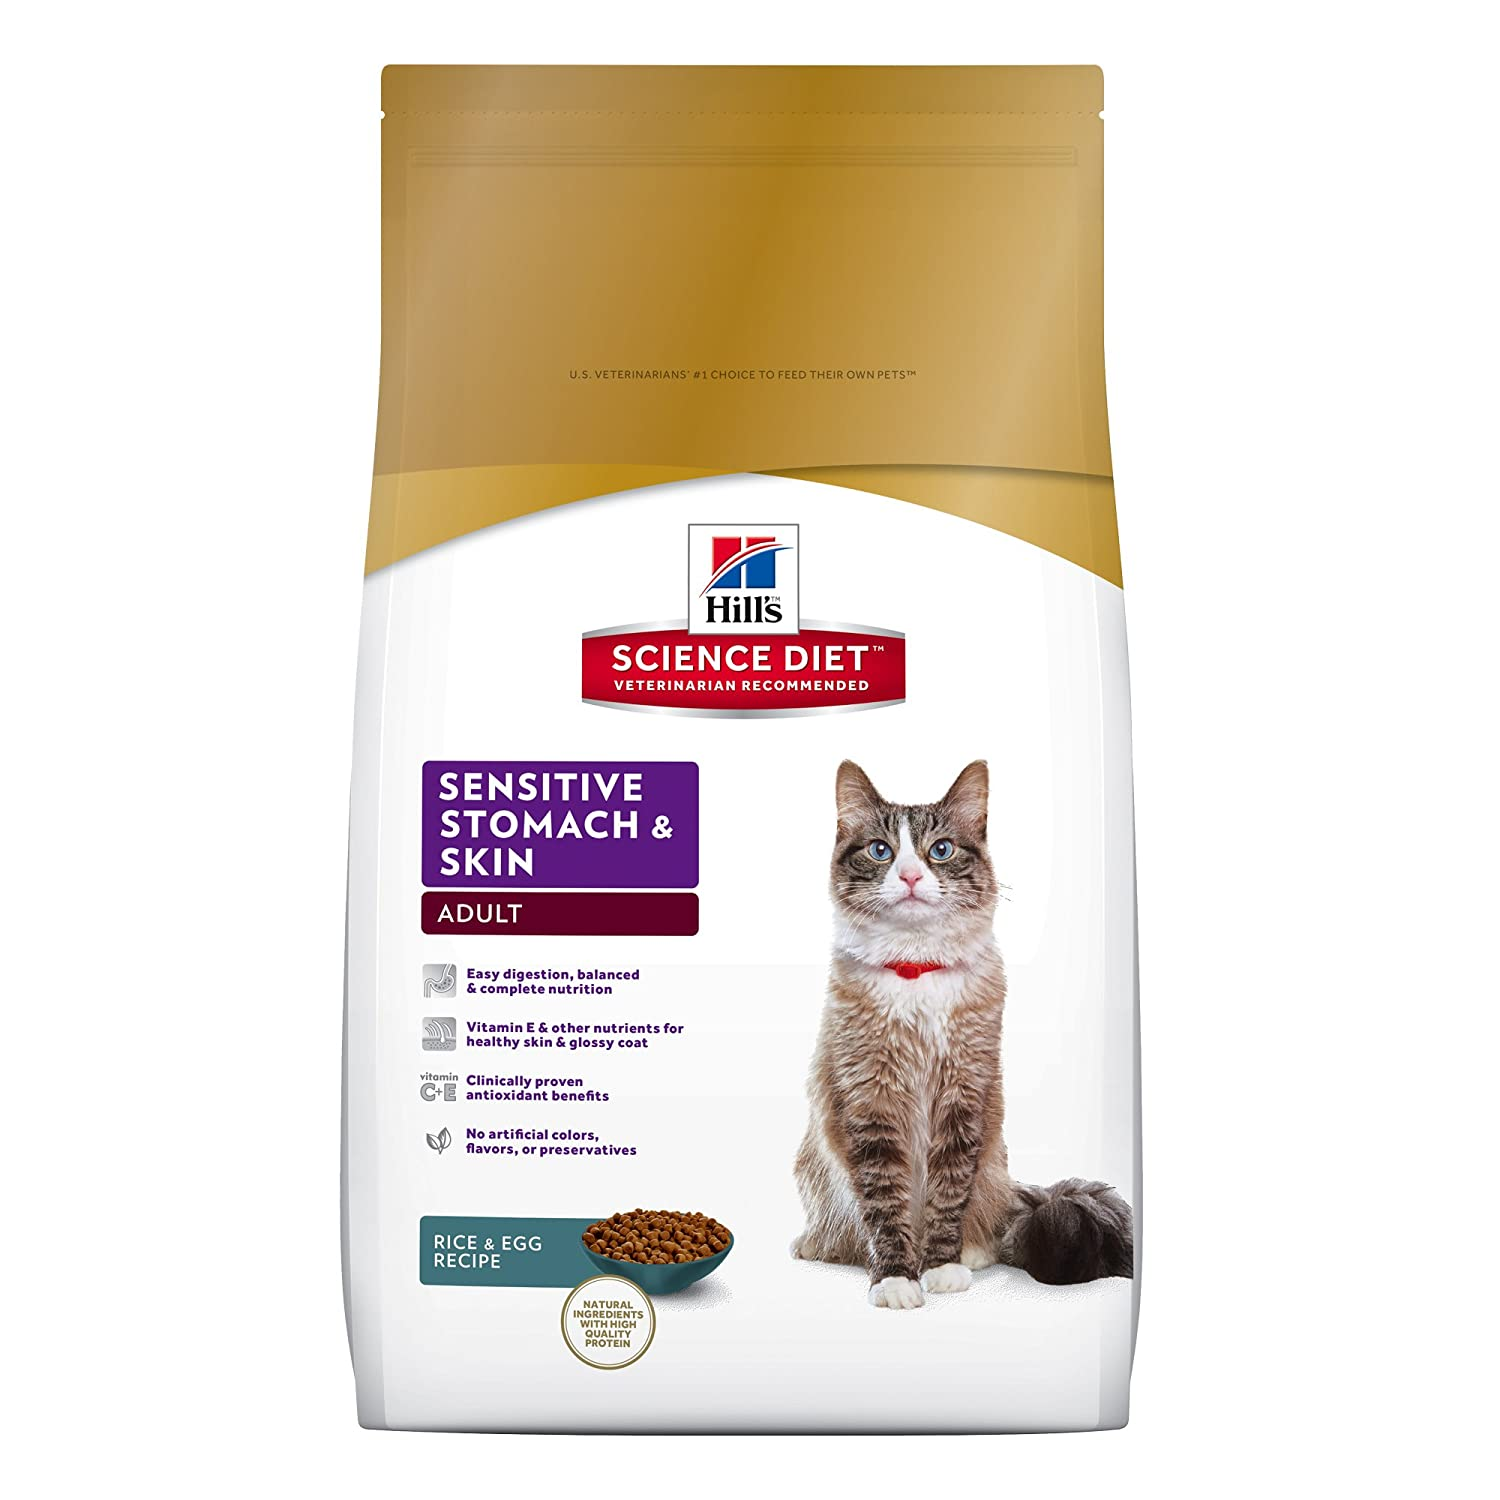 Best Hypoallergenic Food For Your Cat